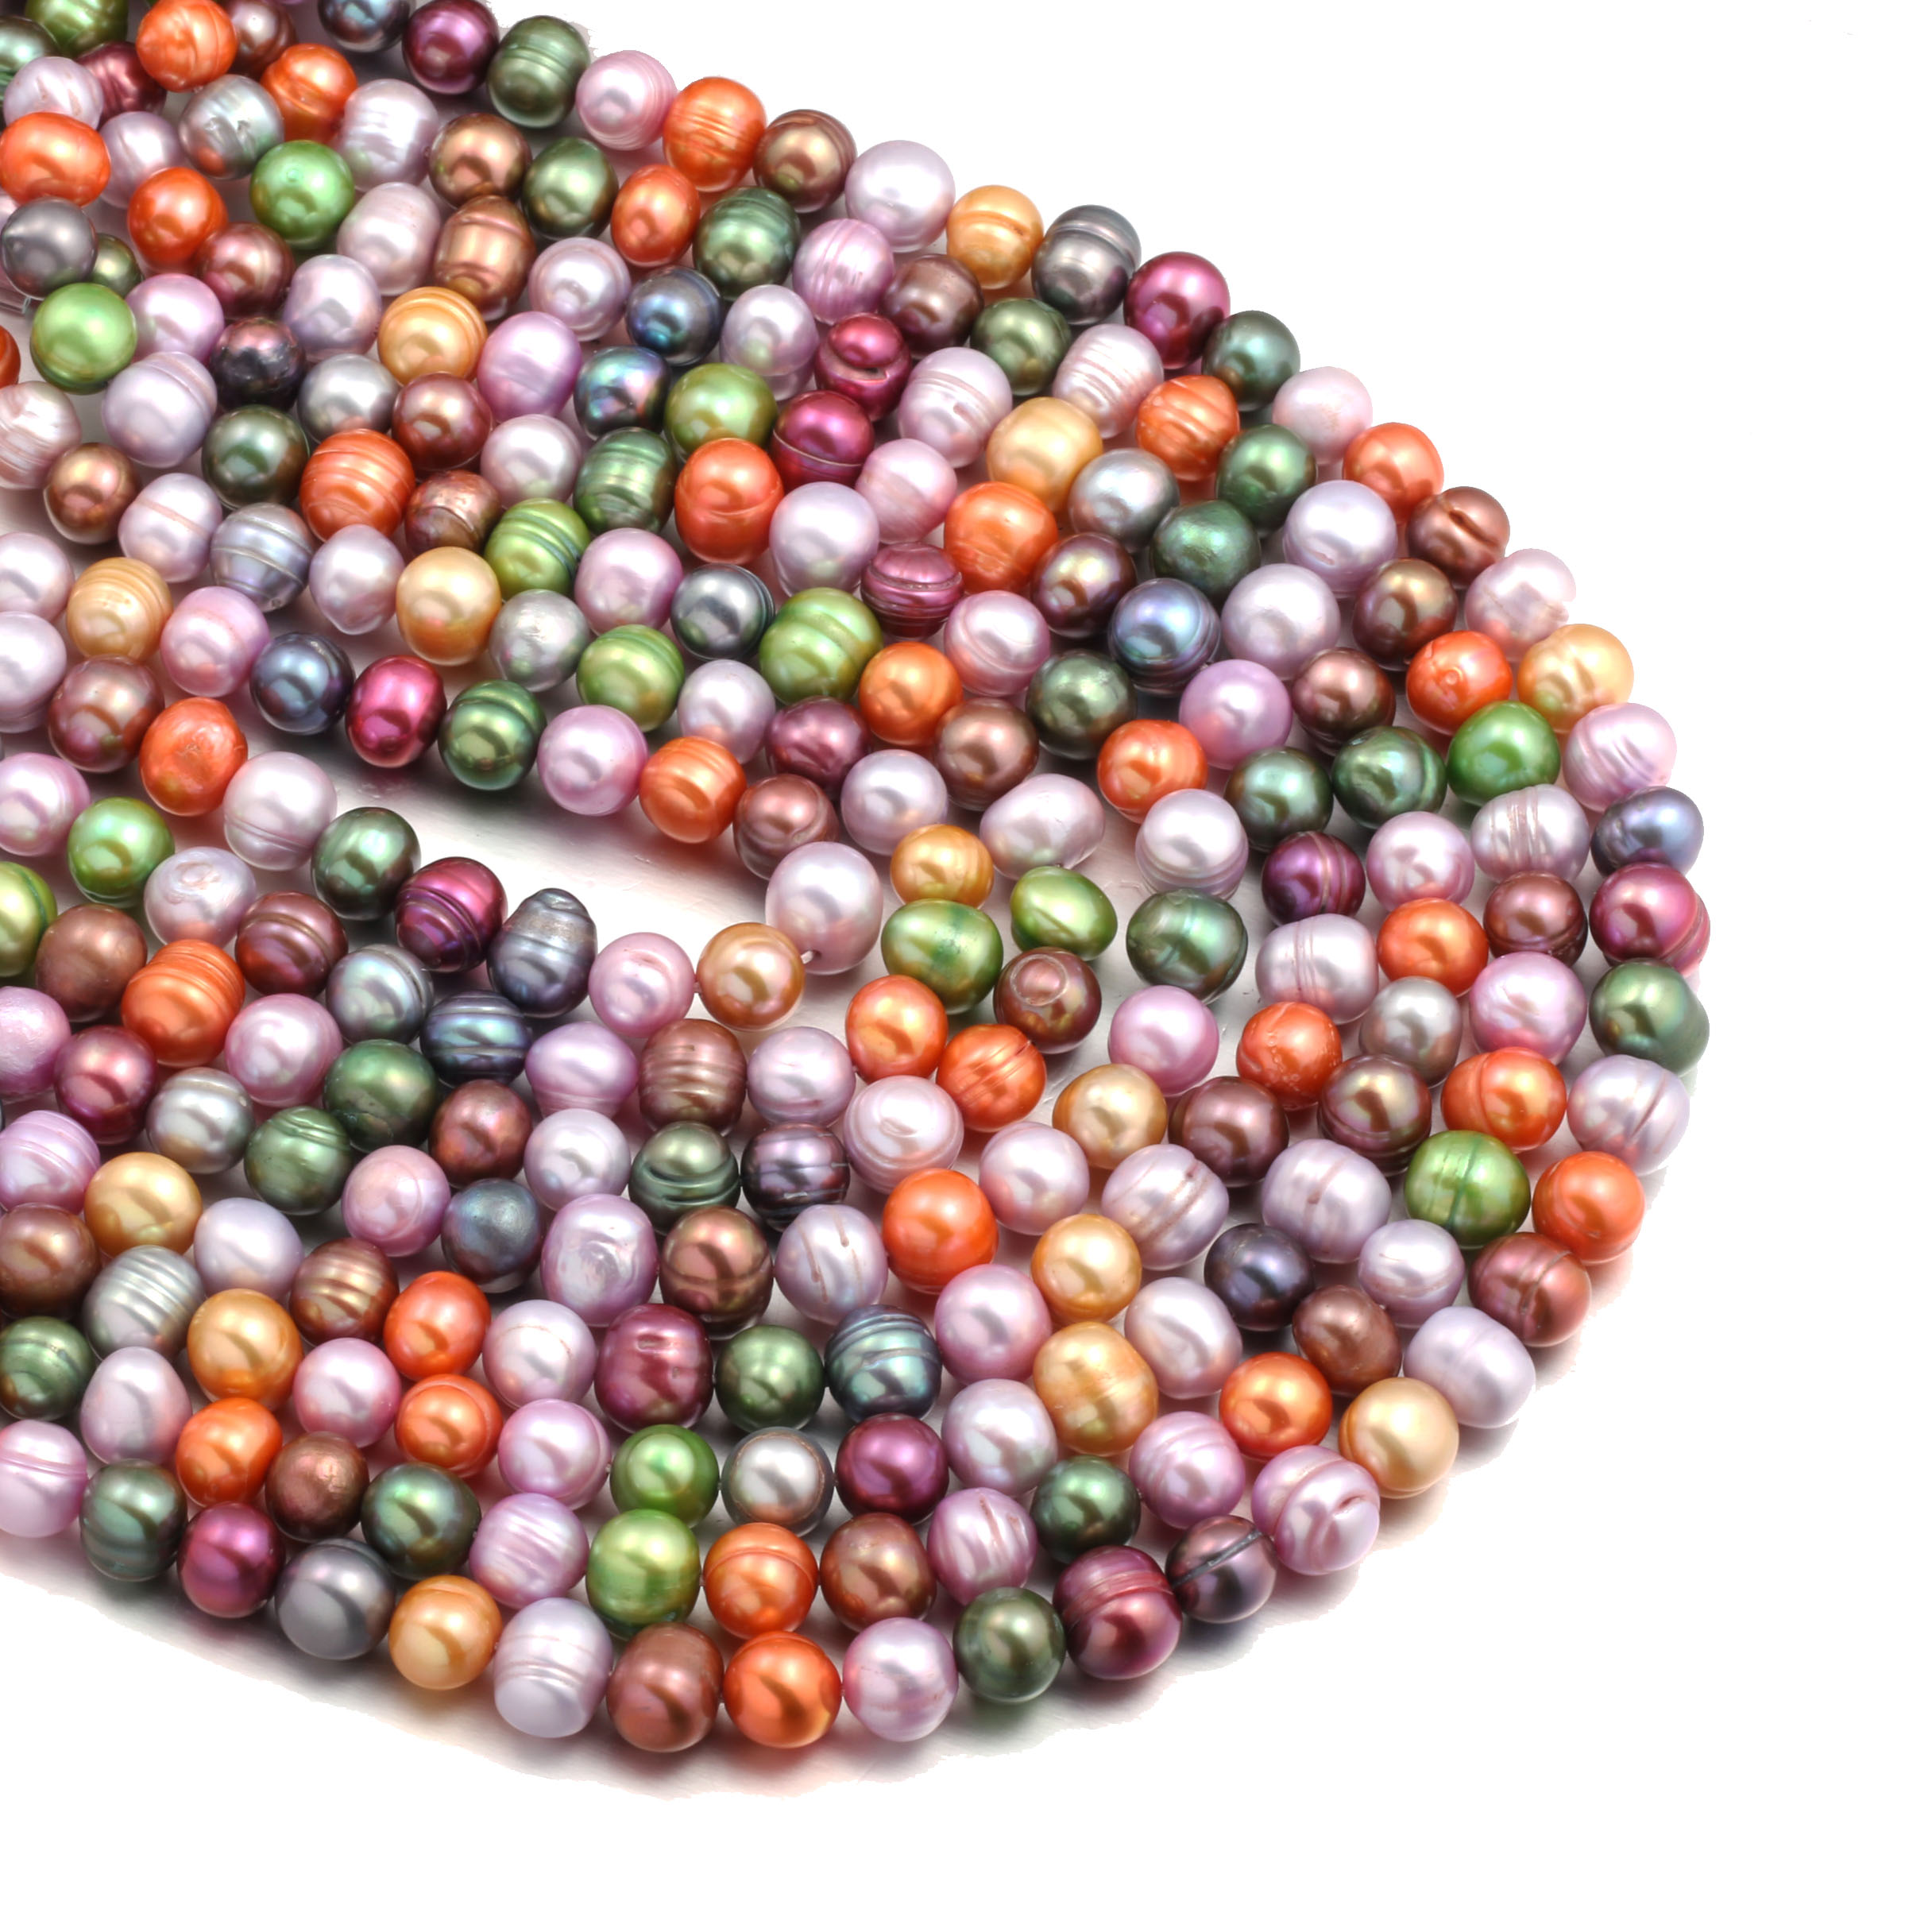 Mixed Color Pearl Round Beads Natural Freshwater Pearls for Necklace Bracelet Jewelry Making DIY Size 8-9mm